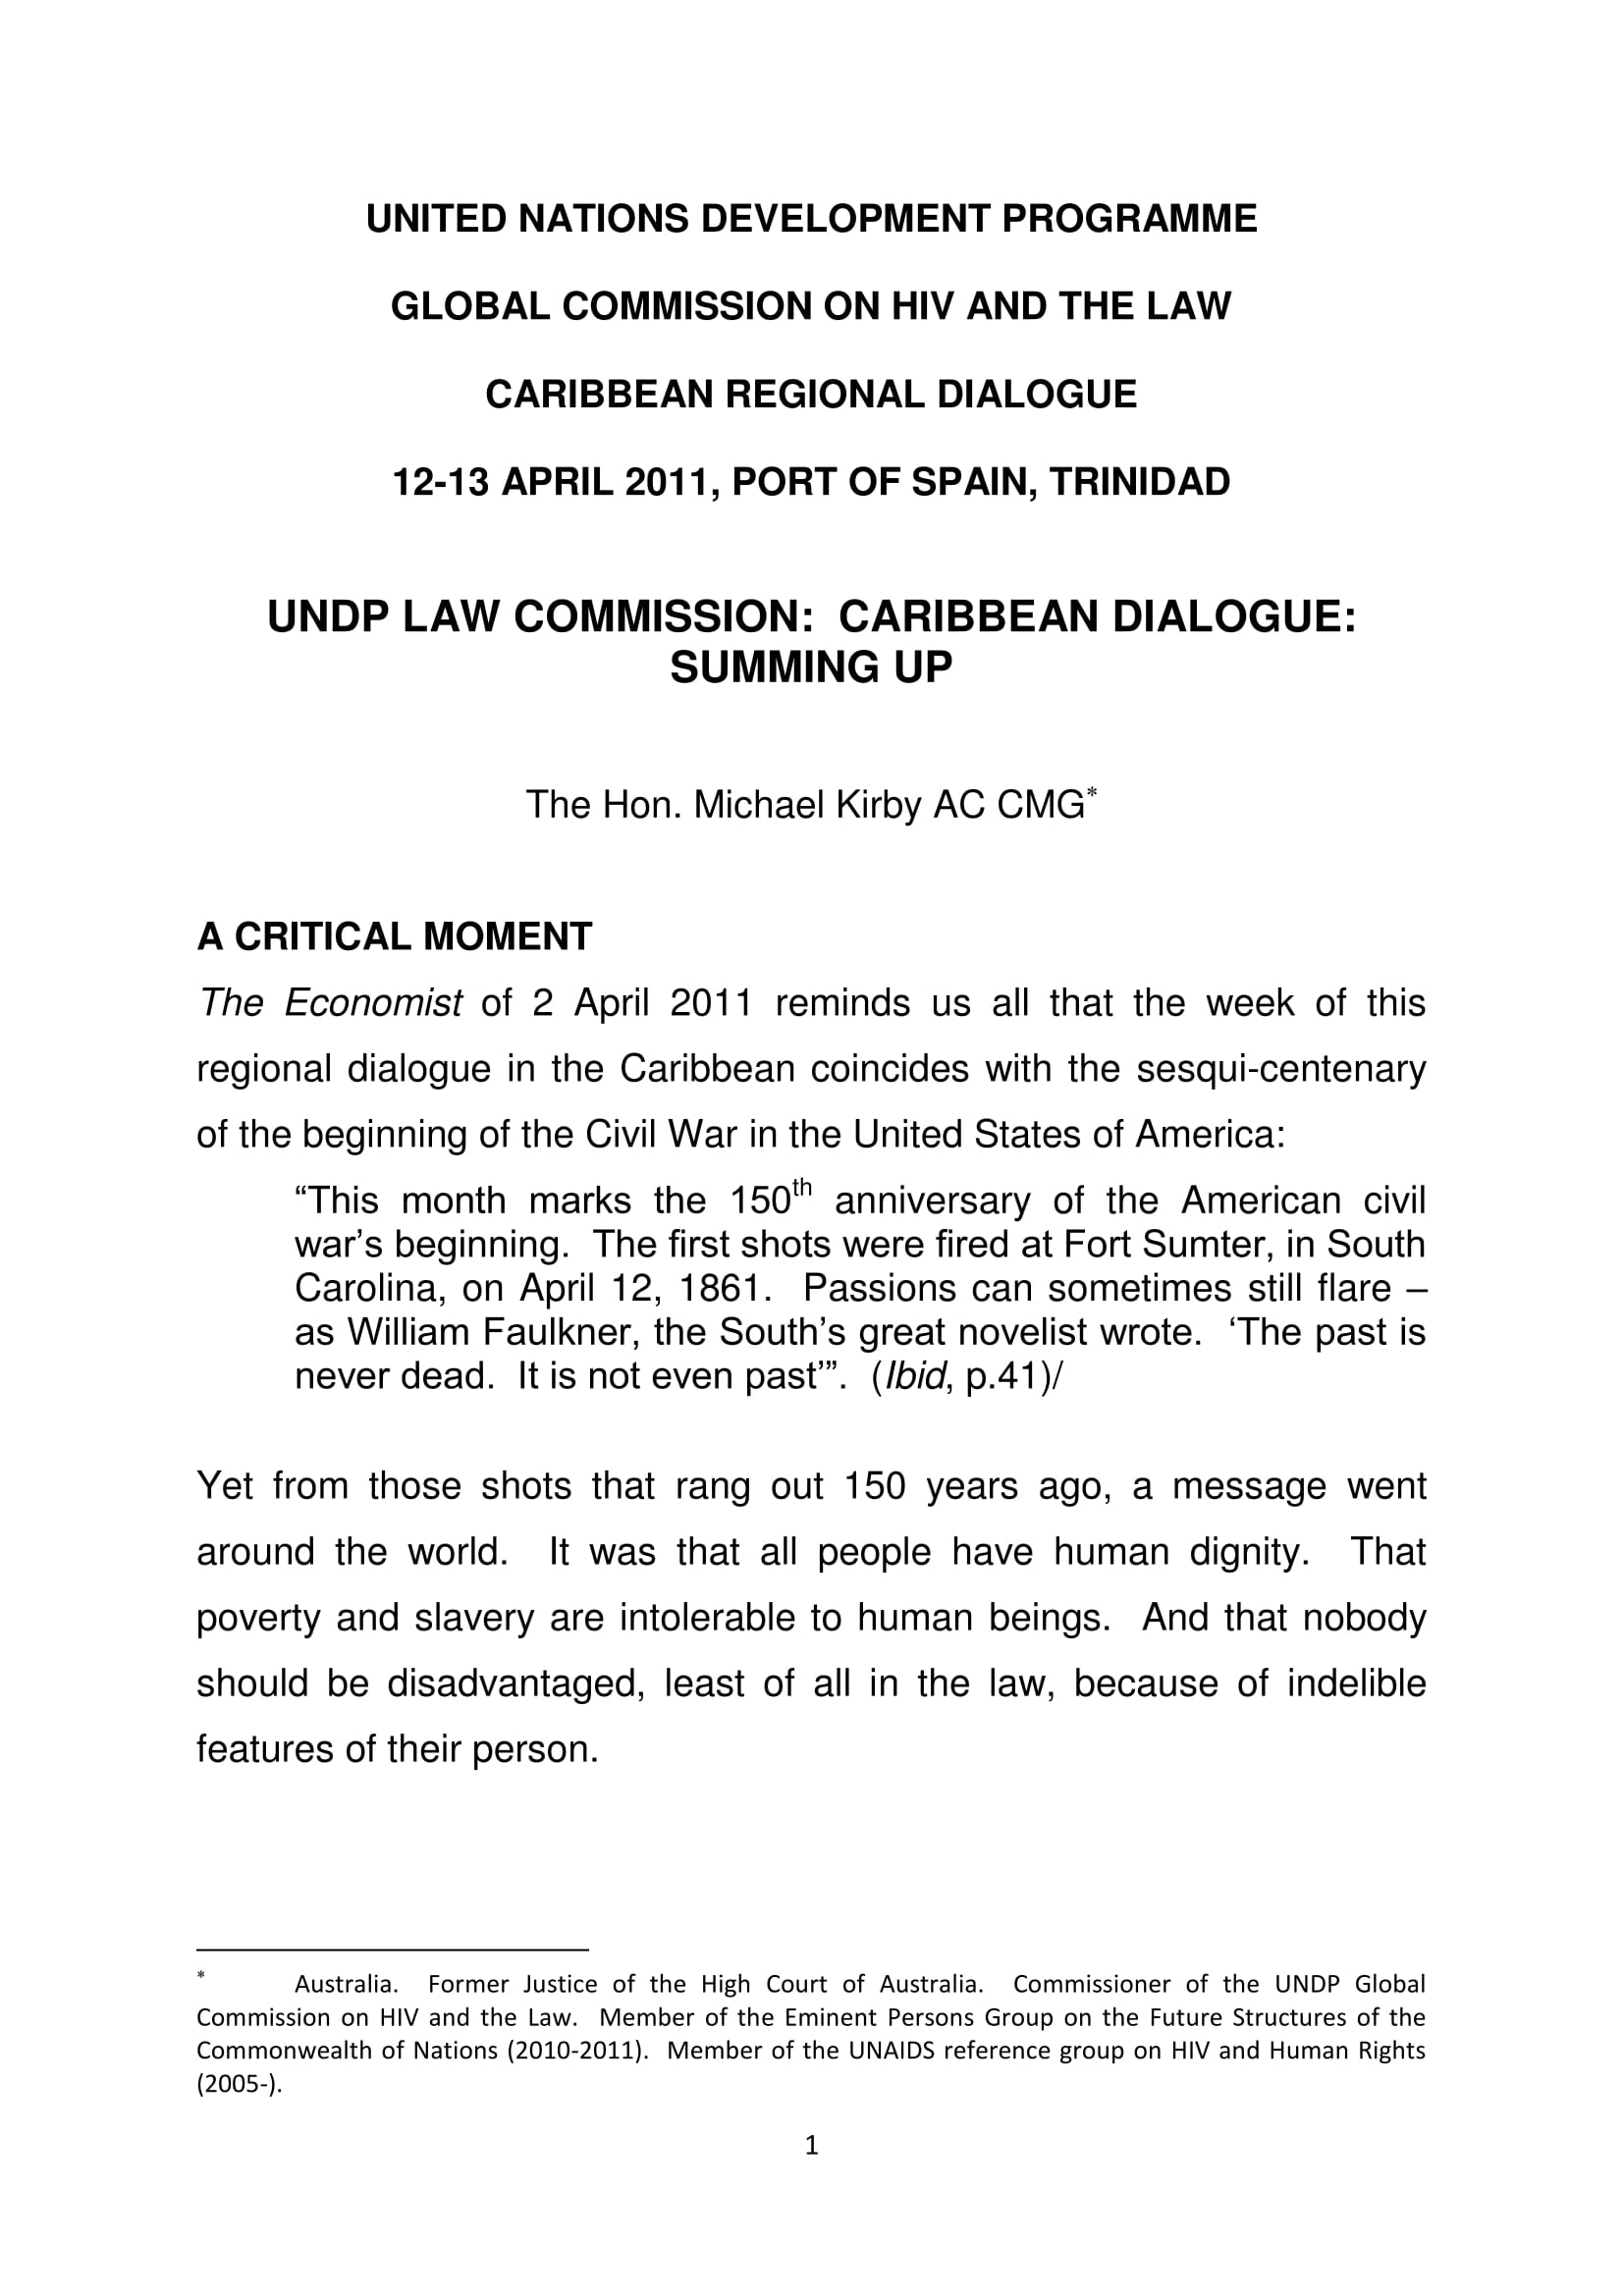 Commissioner Kirby's Summary Comments – Caribbean Regional Dialogue